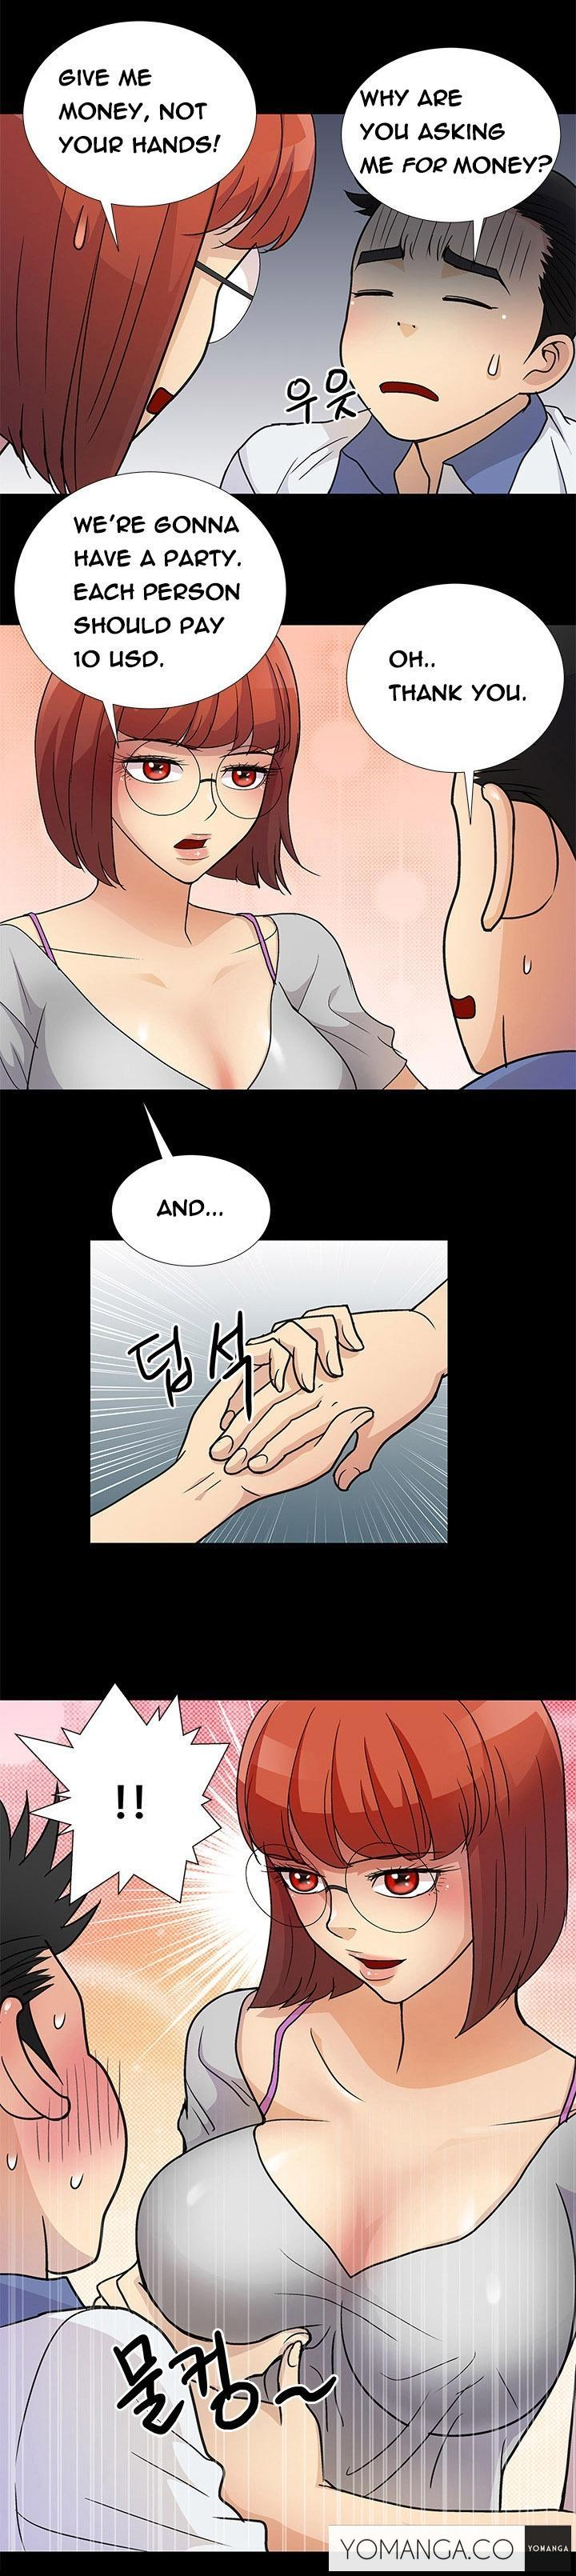 Will You Do as I Say? Ch.1-3 37